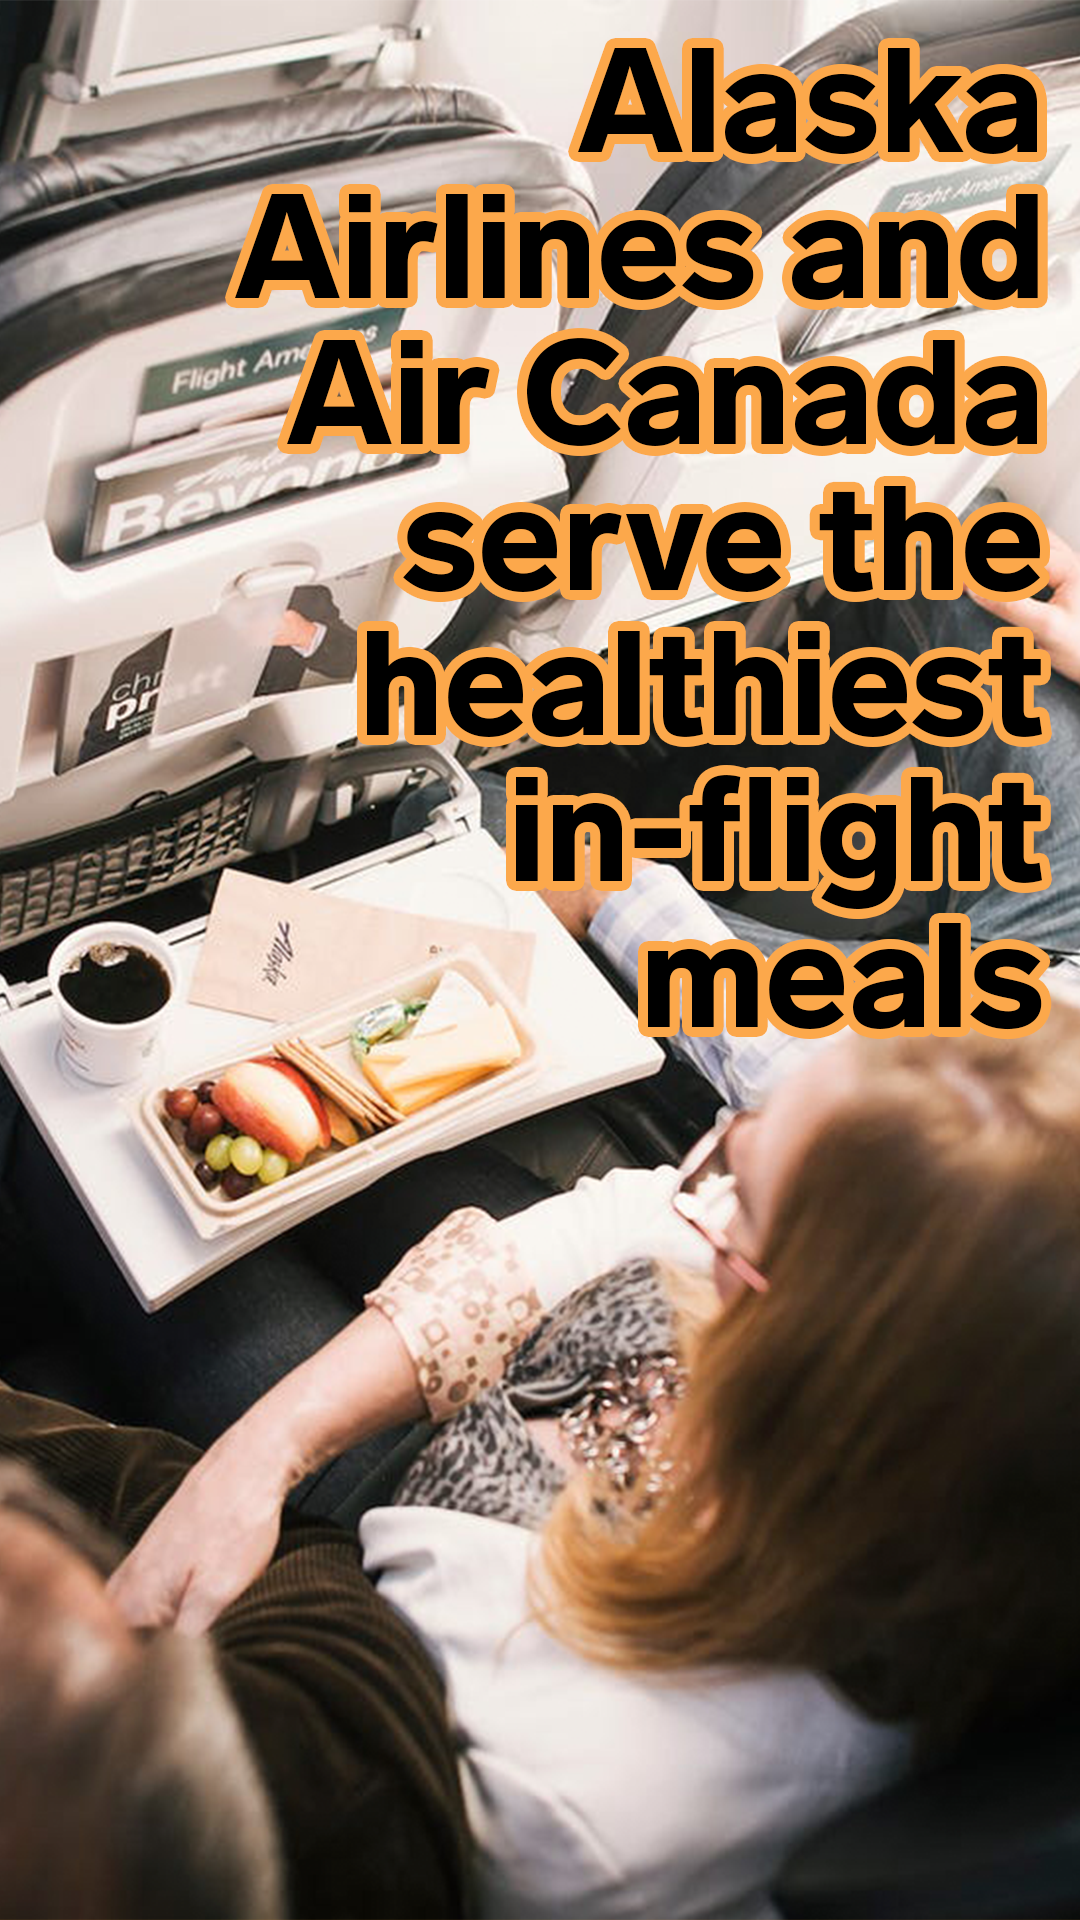 Alaska Airlines and Air Canada serve the healthiest in